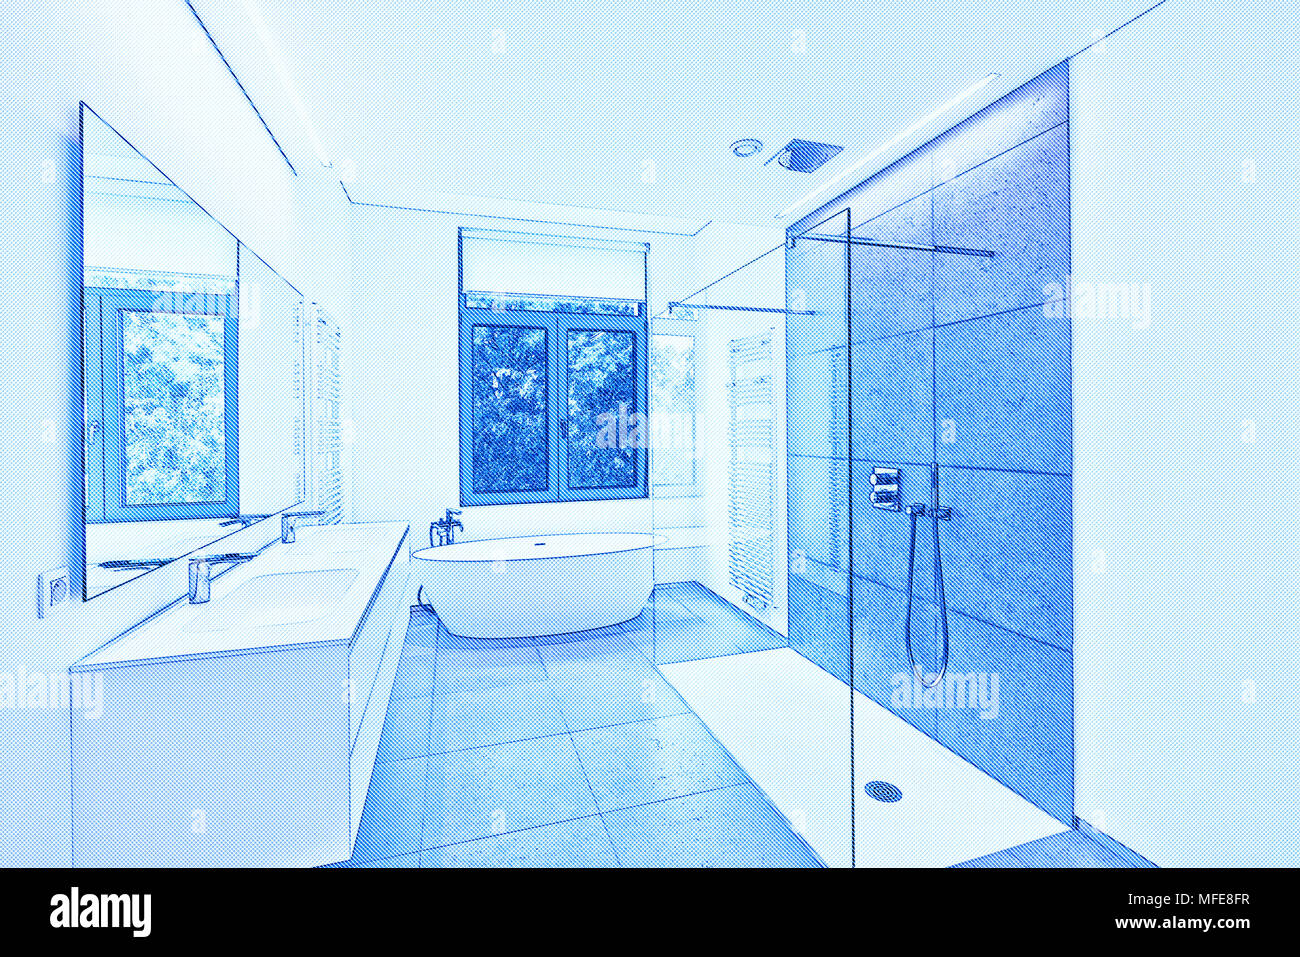 Sketch Bathtub Bathroom Stock Photos & Sketch Bathtub Bathroom Stock ...